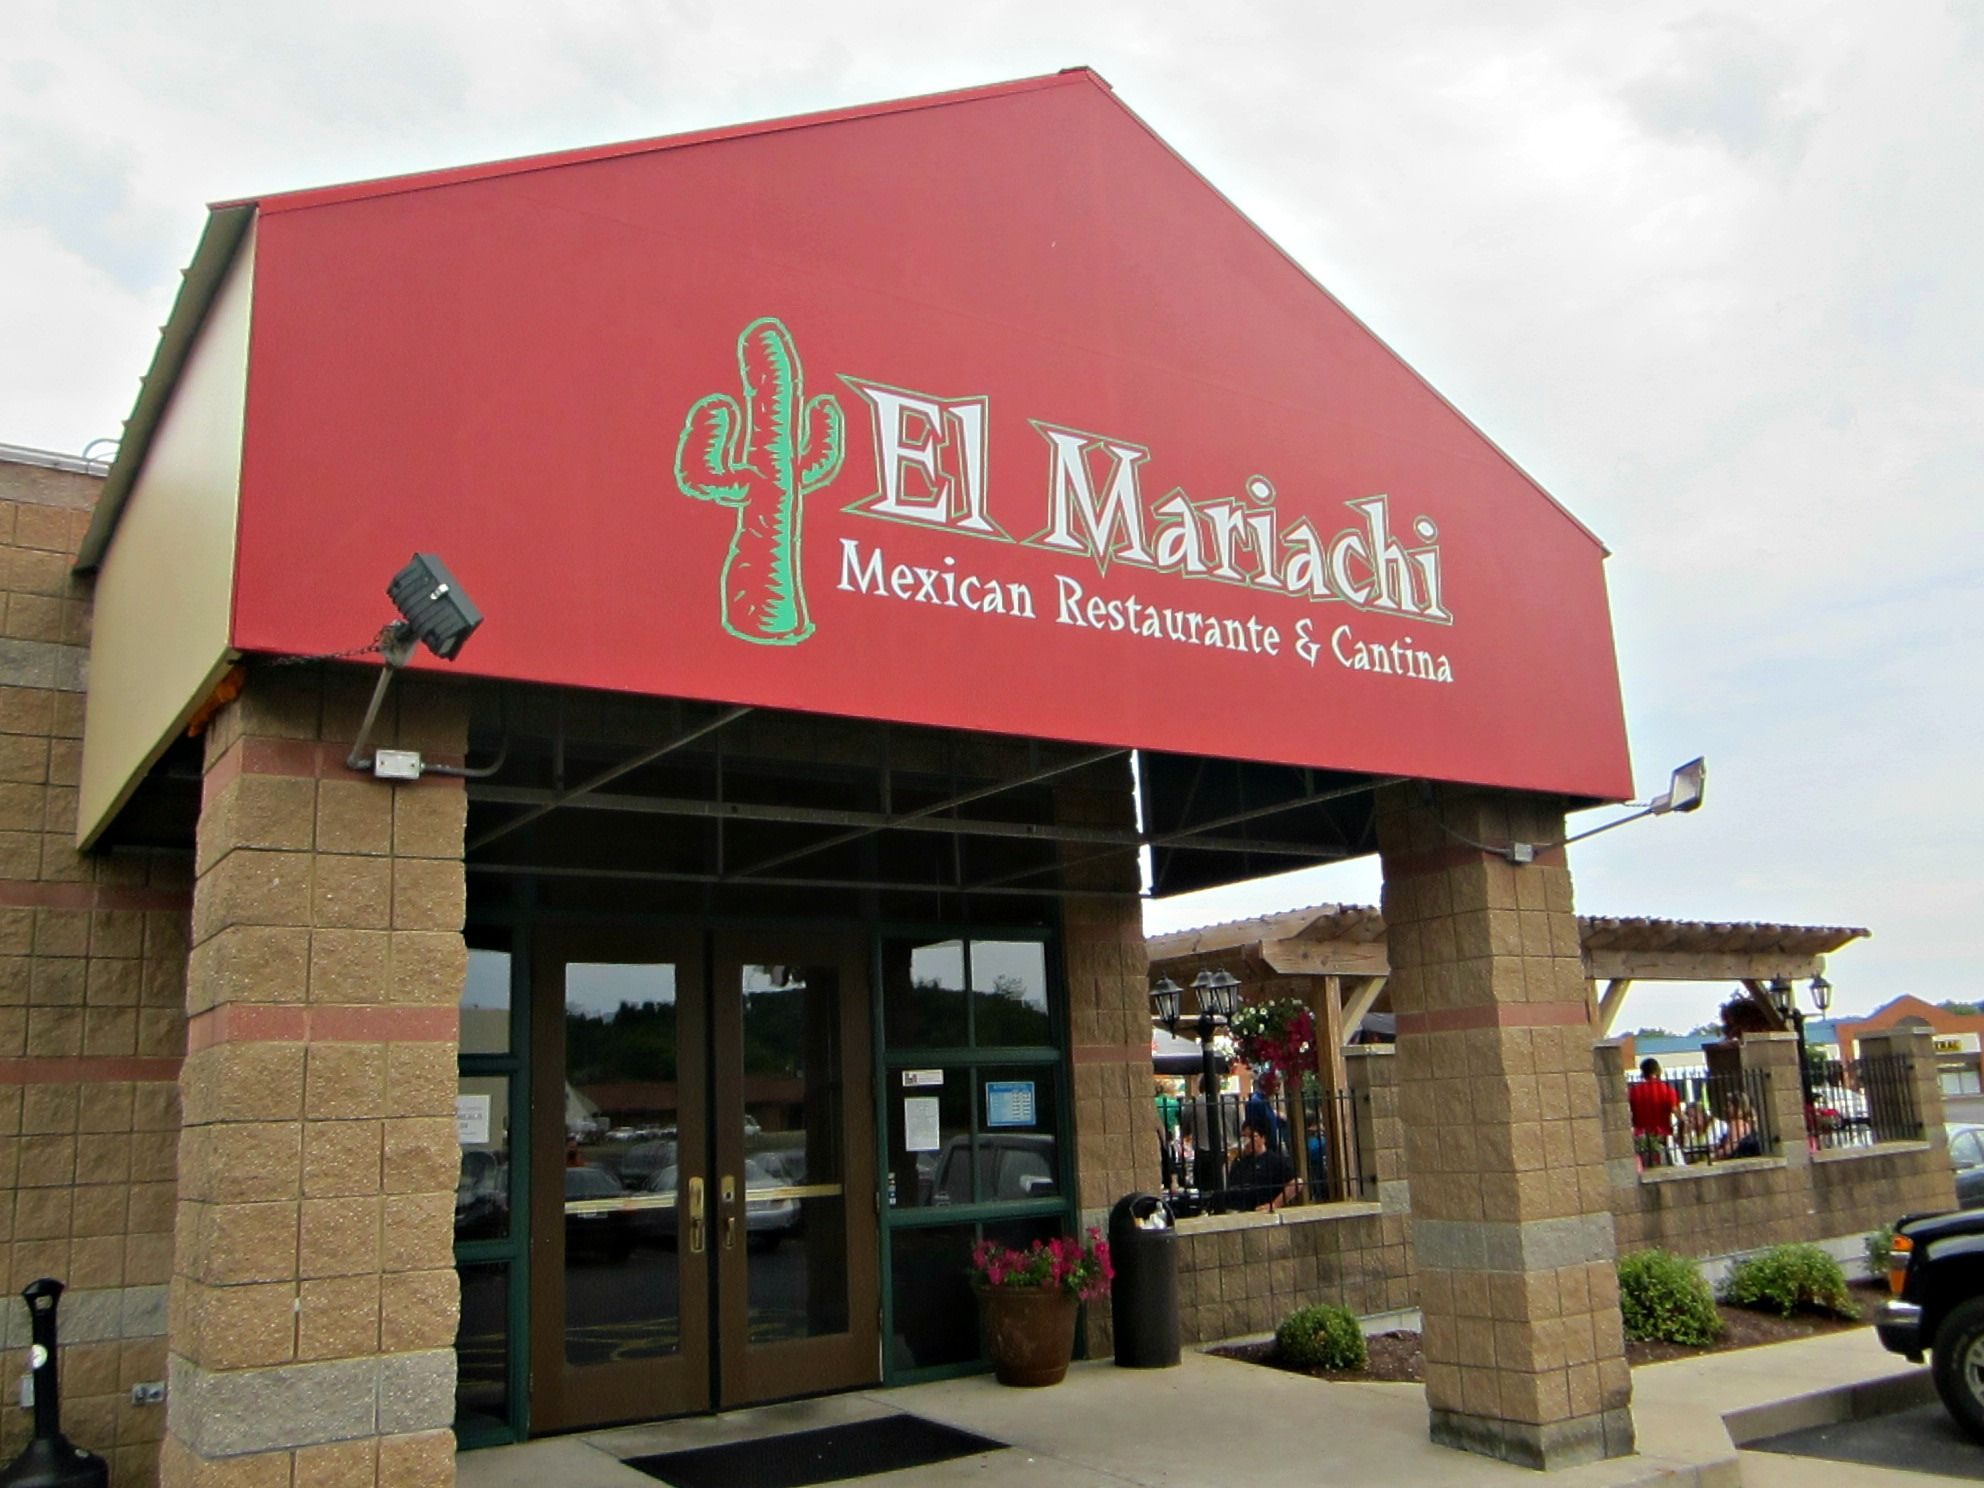 El Mariachi Mexican Restaurant Cantina Harrison On This Ohio Life